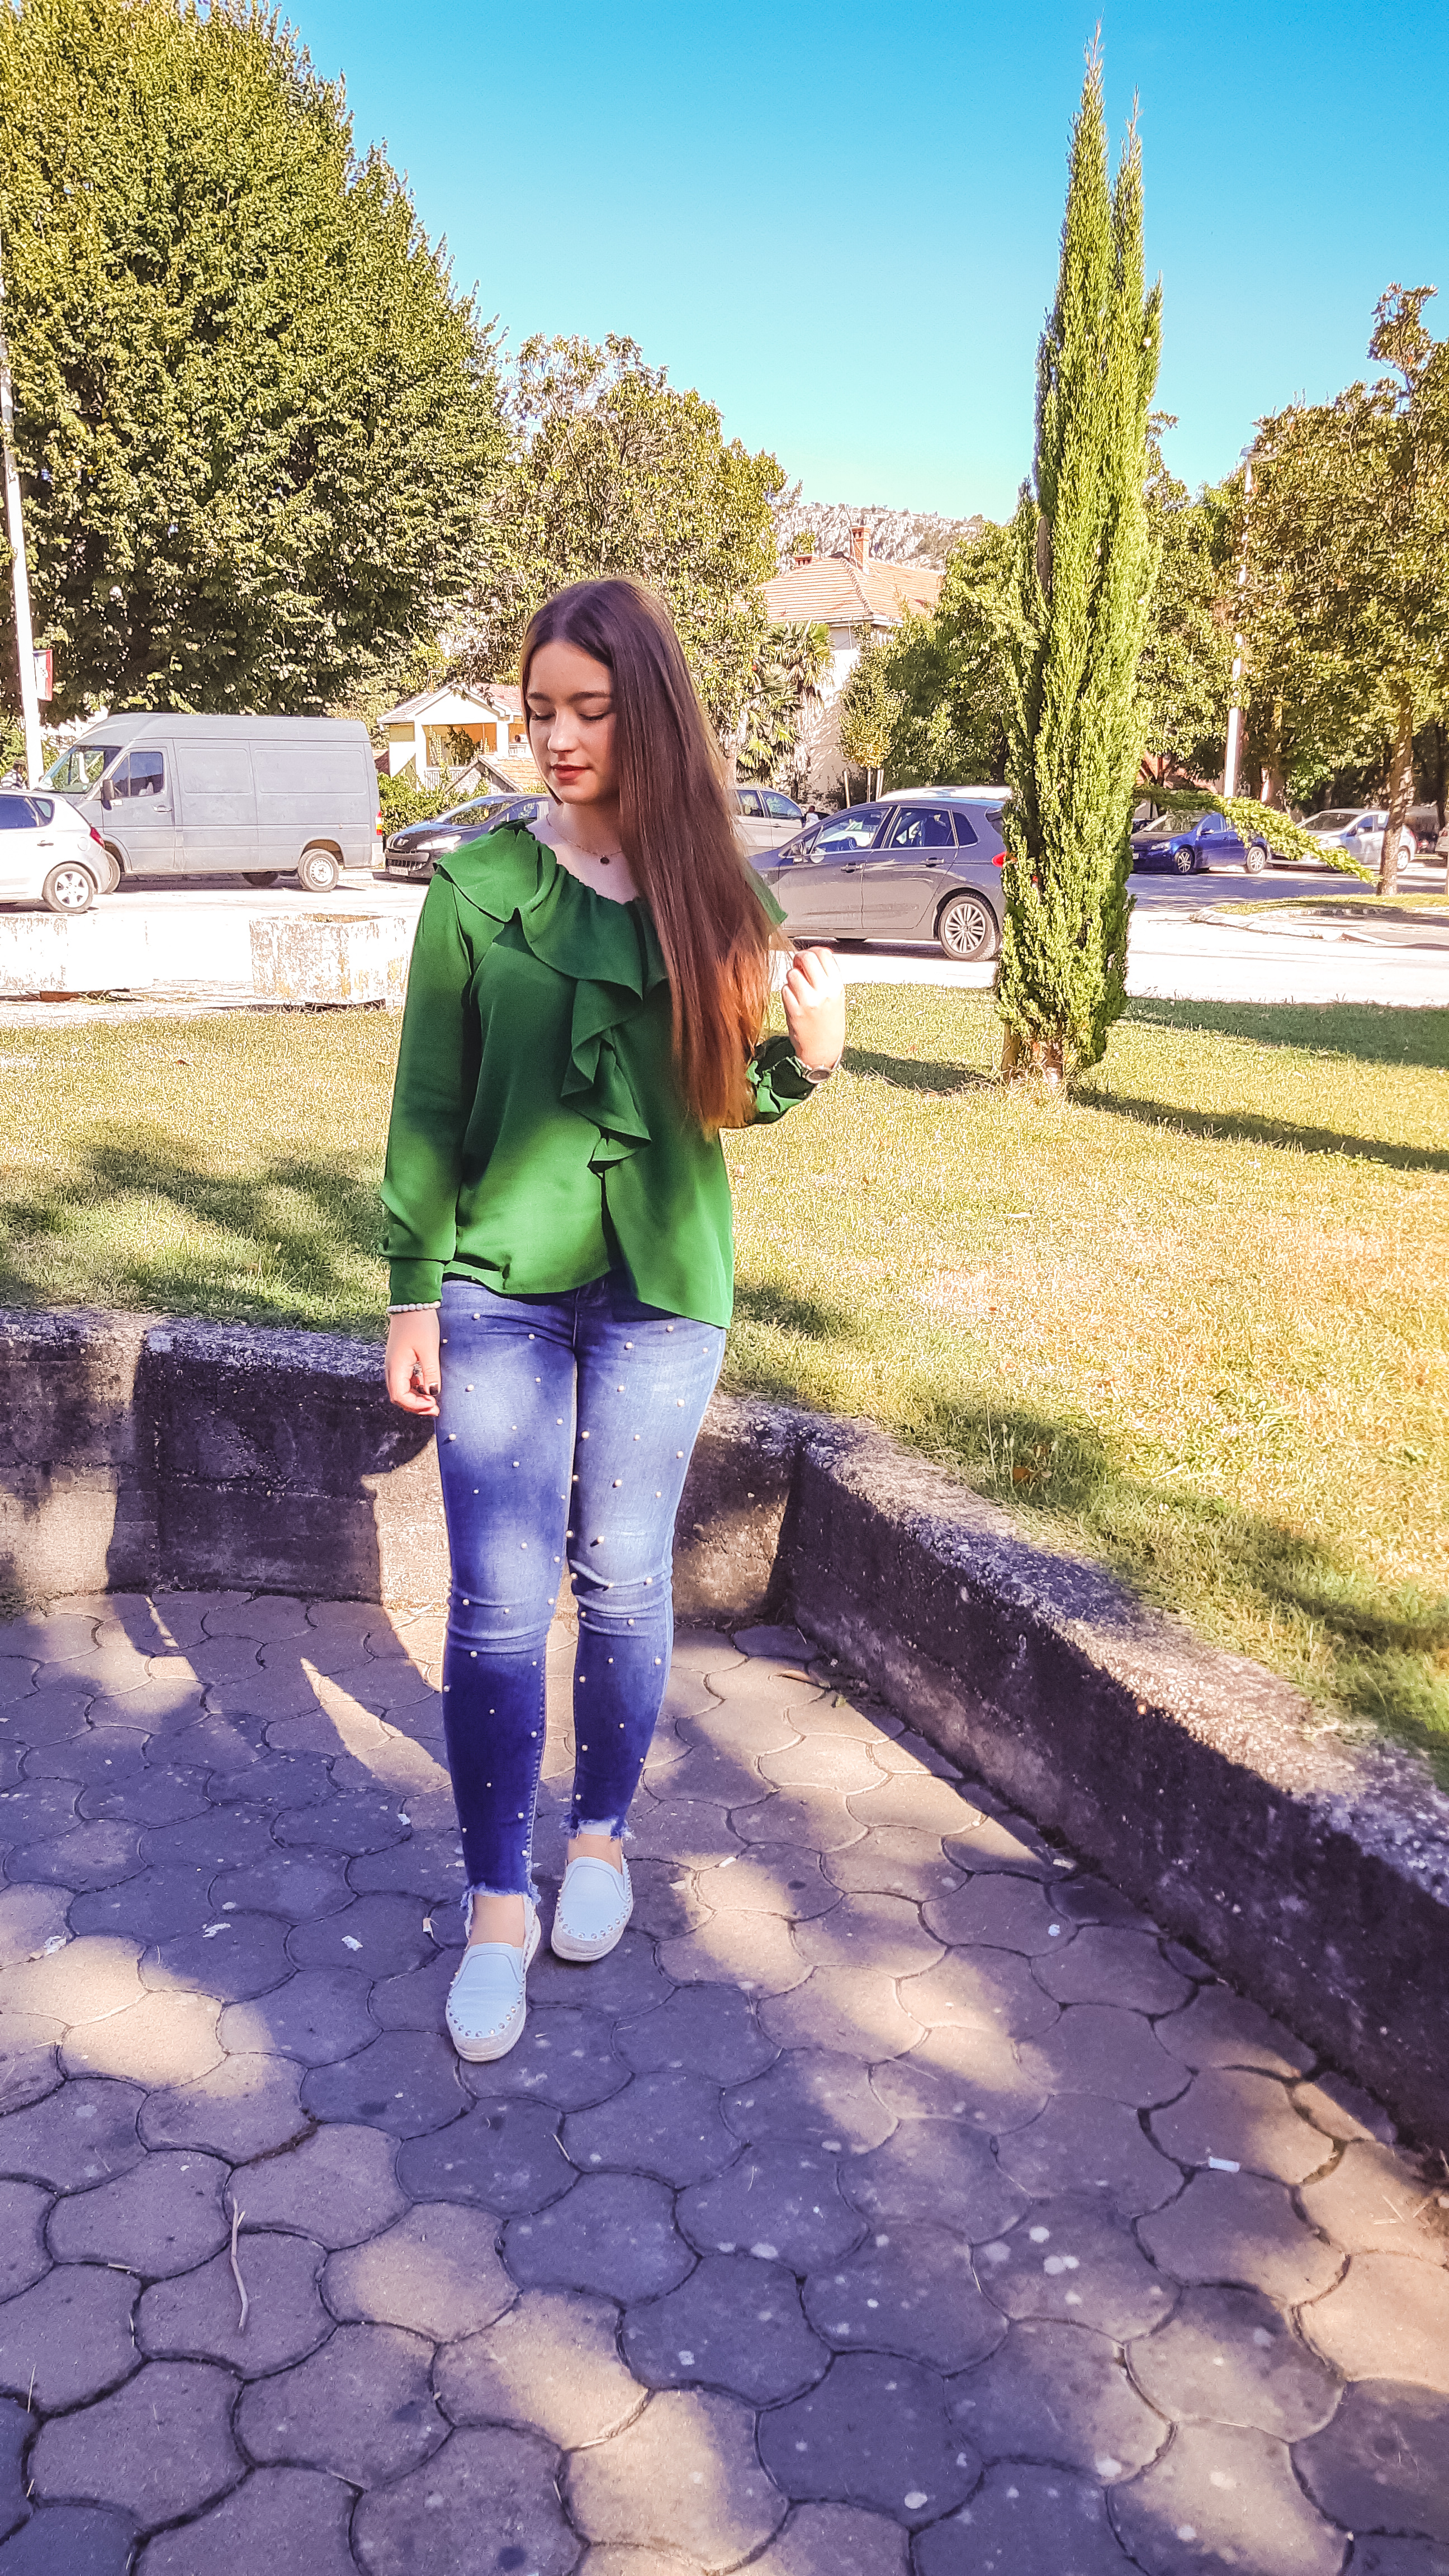 green blouse outfit livinglikev fashion blogger living like v style blogger blooming jelly